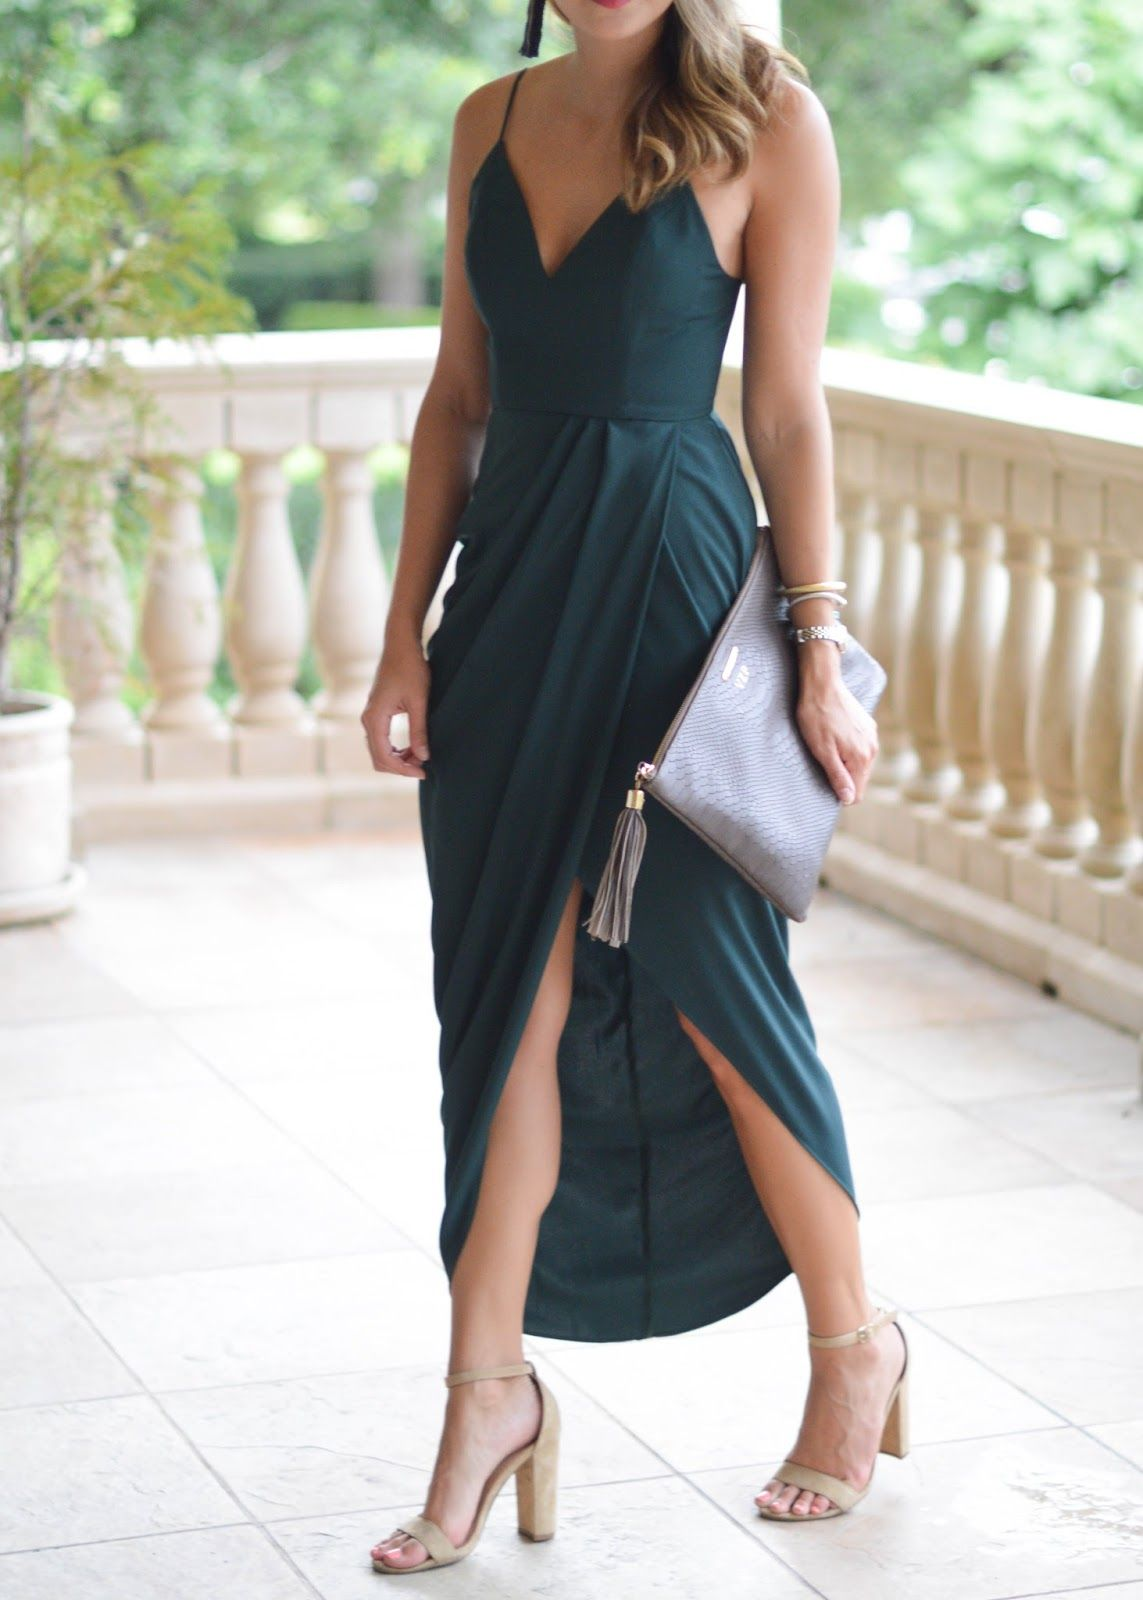 That one dress wedding guest style dress wedding guests for Dresses to attend wedding